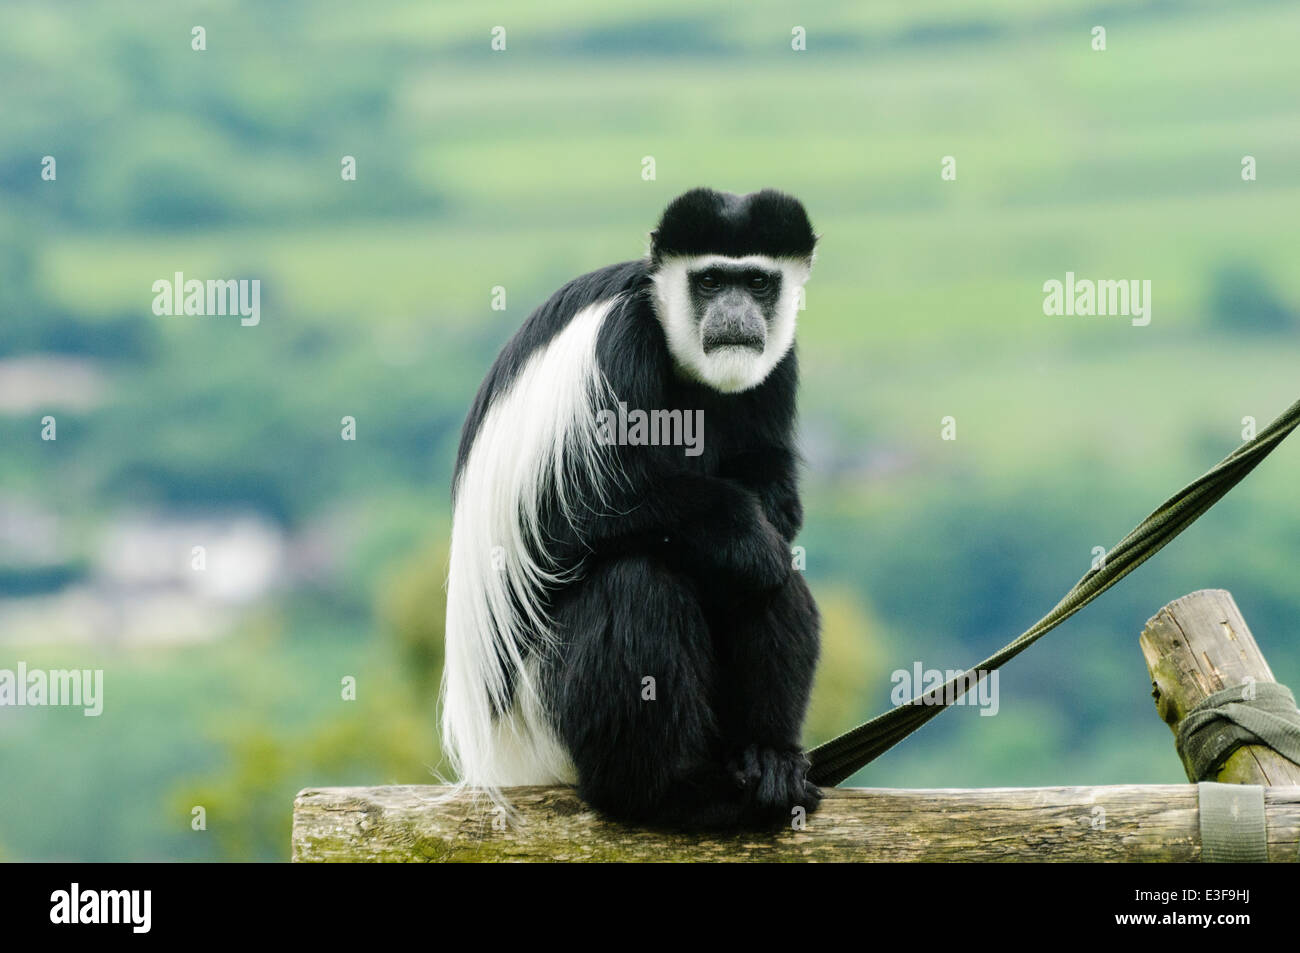 Black and white colobus monkey (Colobus guereza) in a zoo - Stock Image